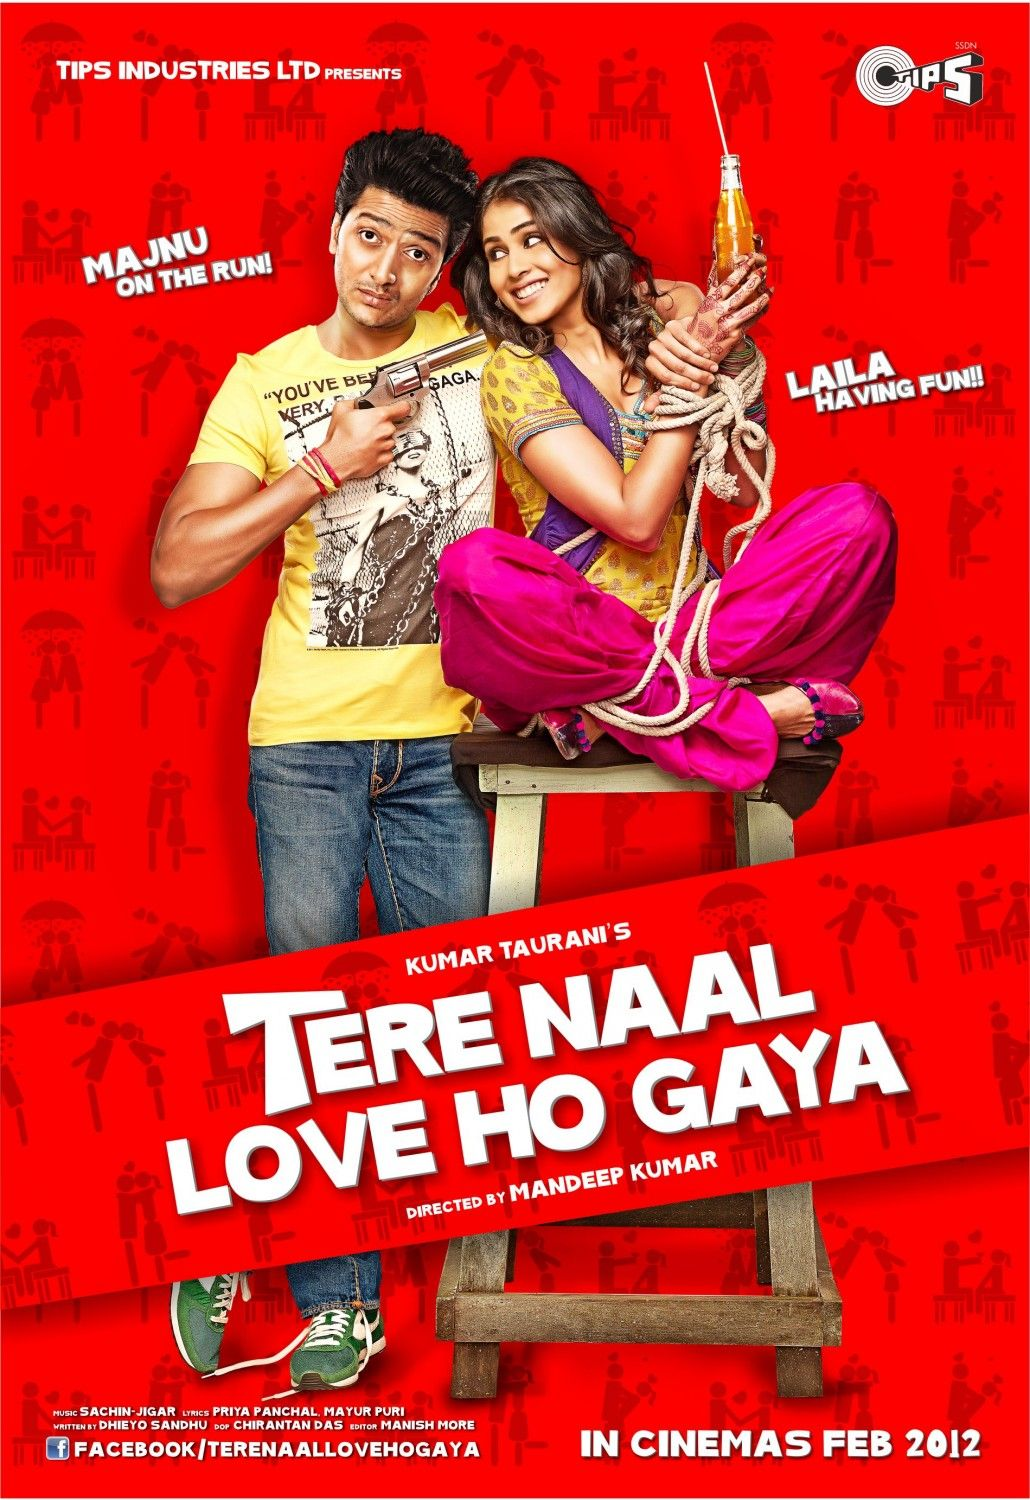 Tere Naal Love Ho Gaya Adorable Cute Feel Good Movie With An Amazing Soundtrack